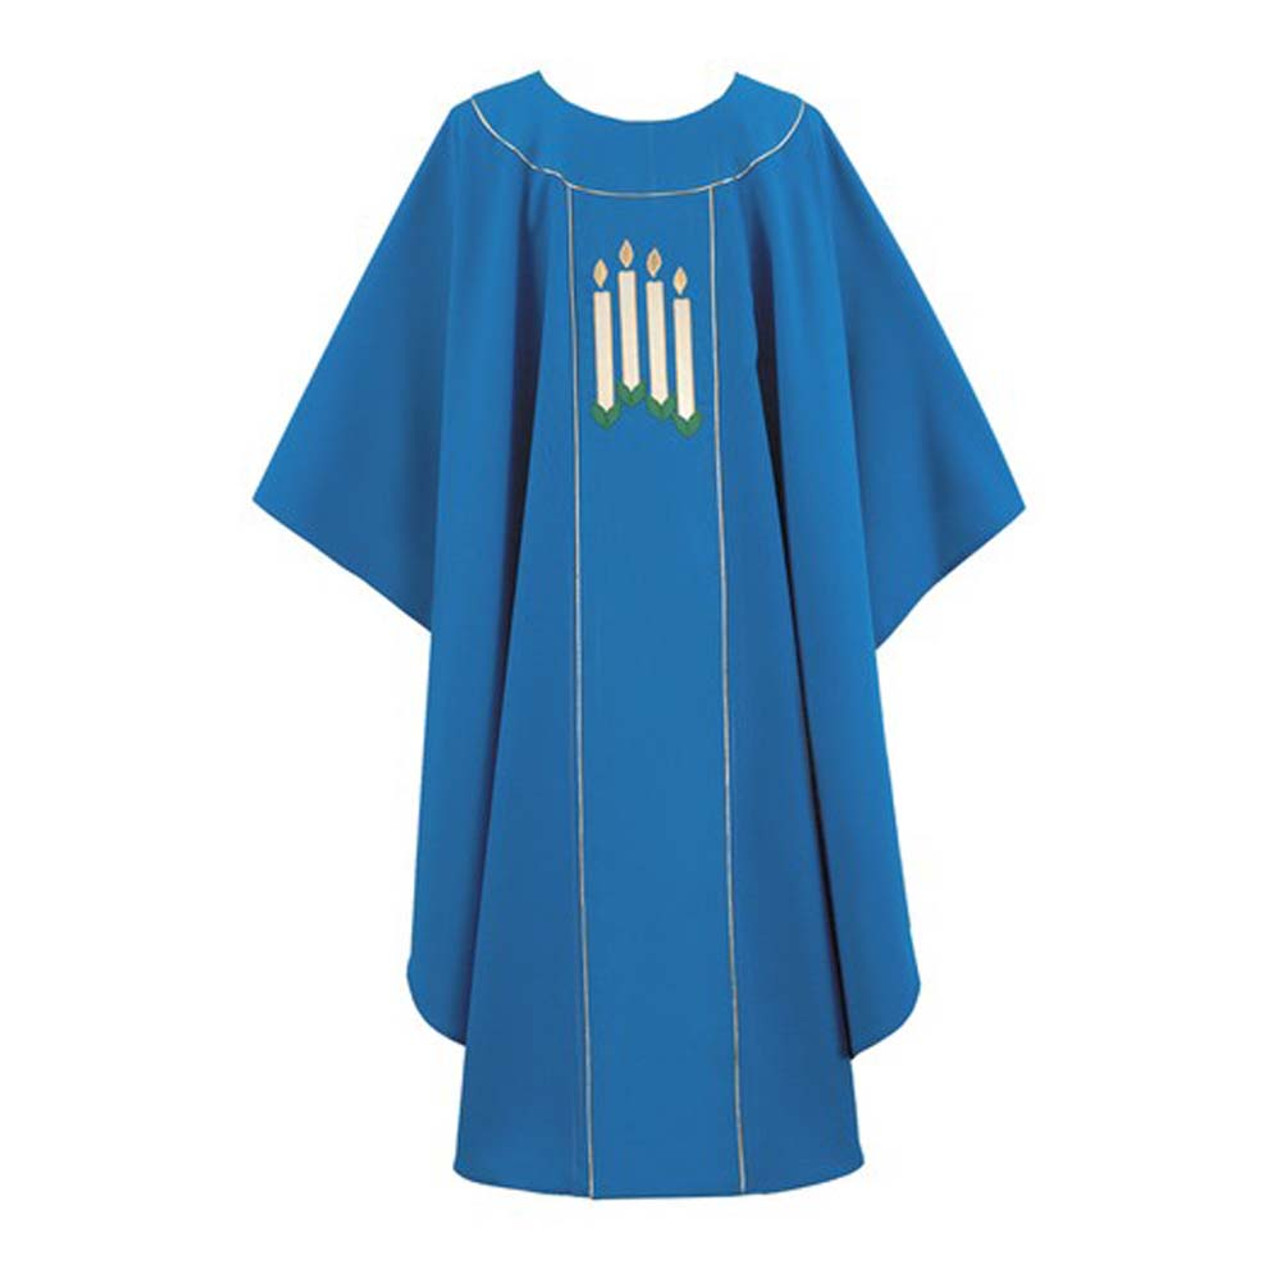 Indigo Advent Chasuble with 4 Candles